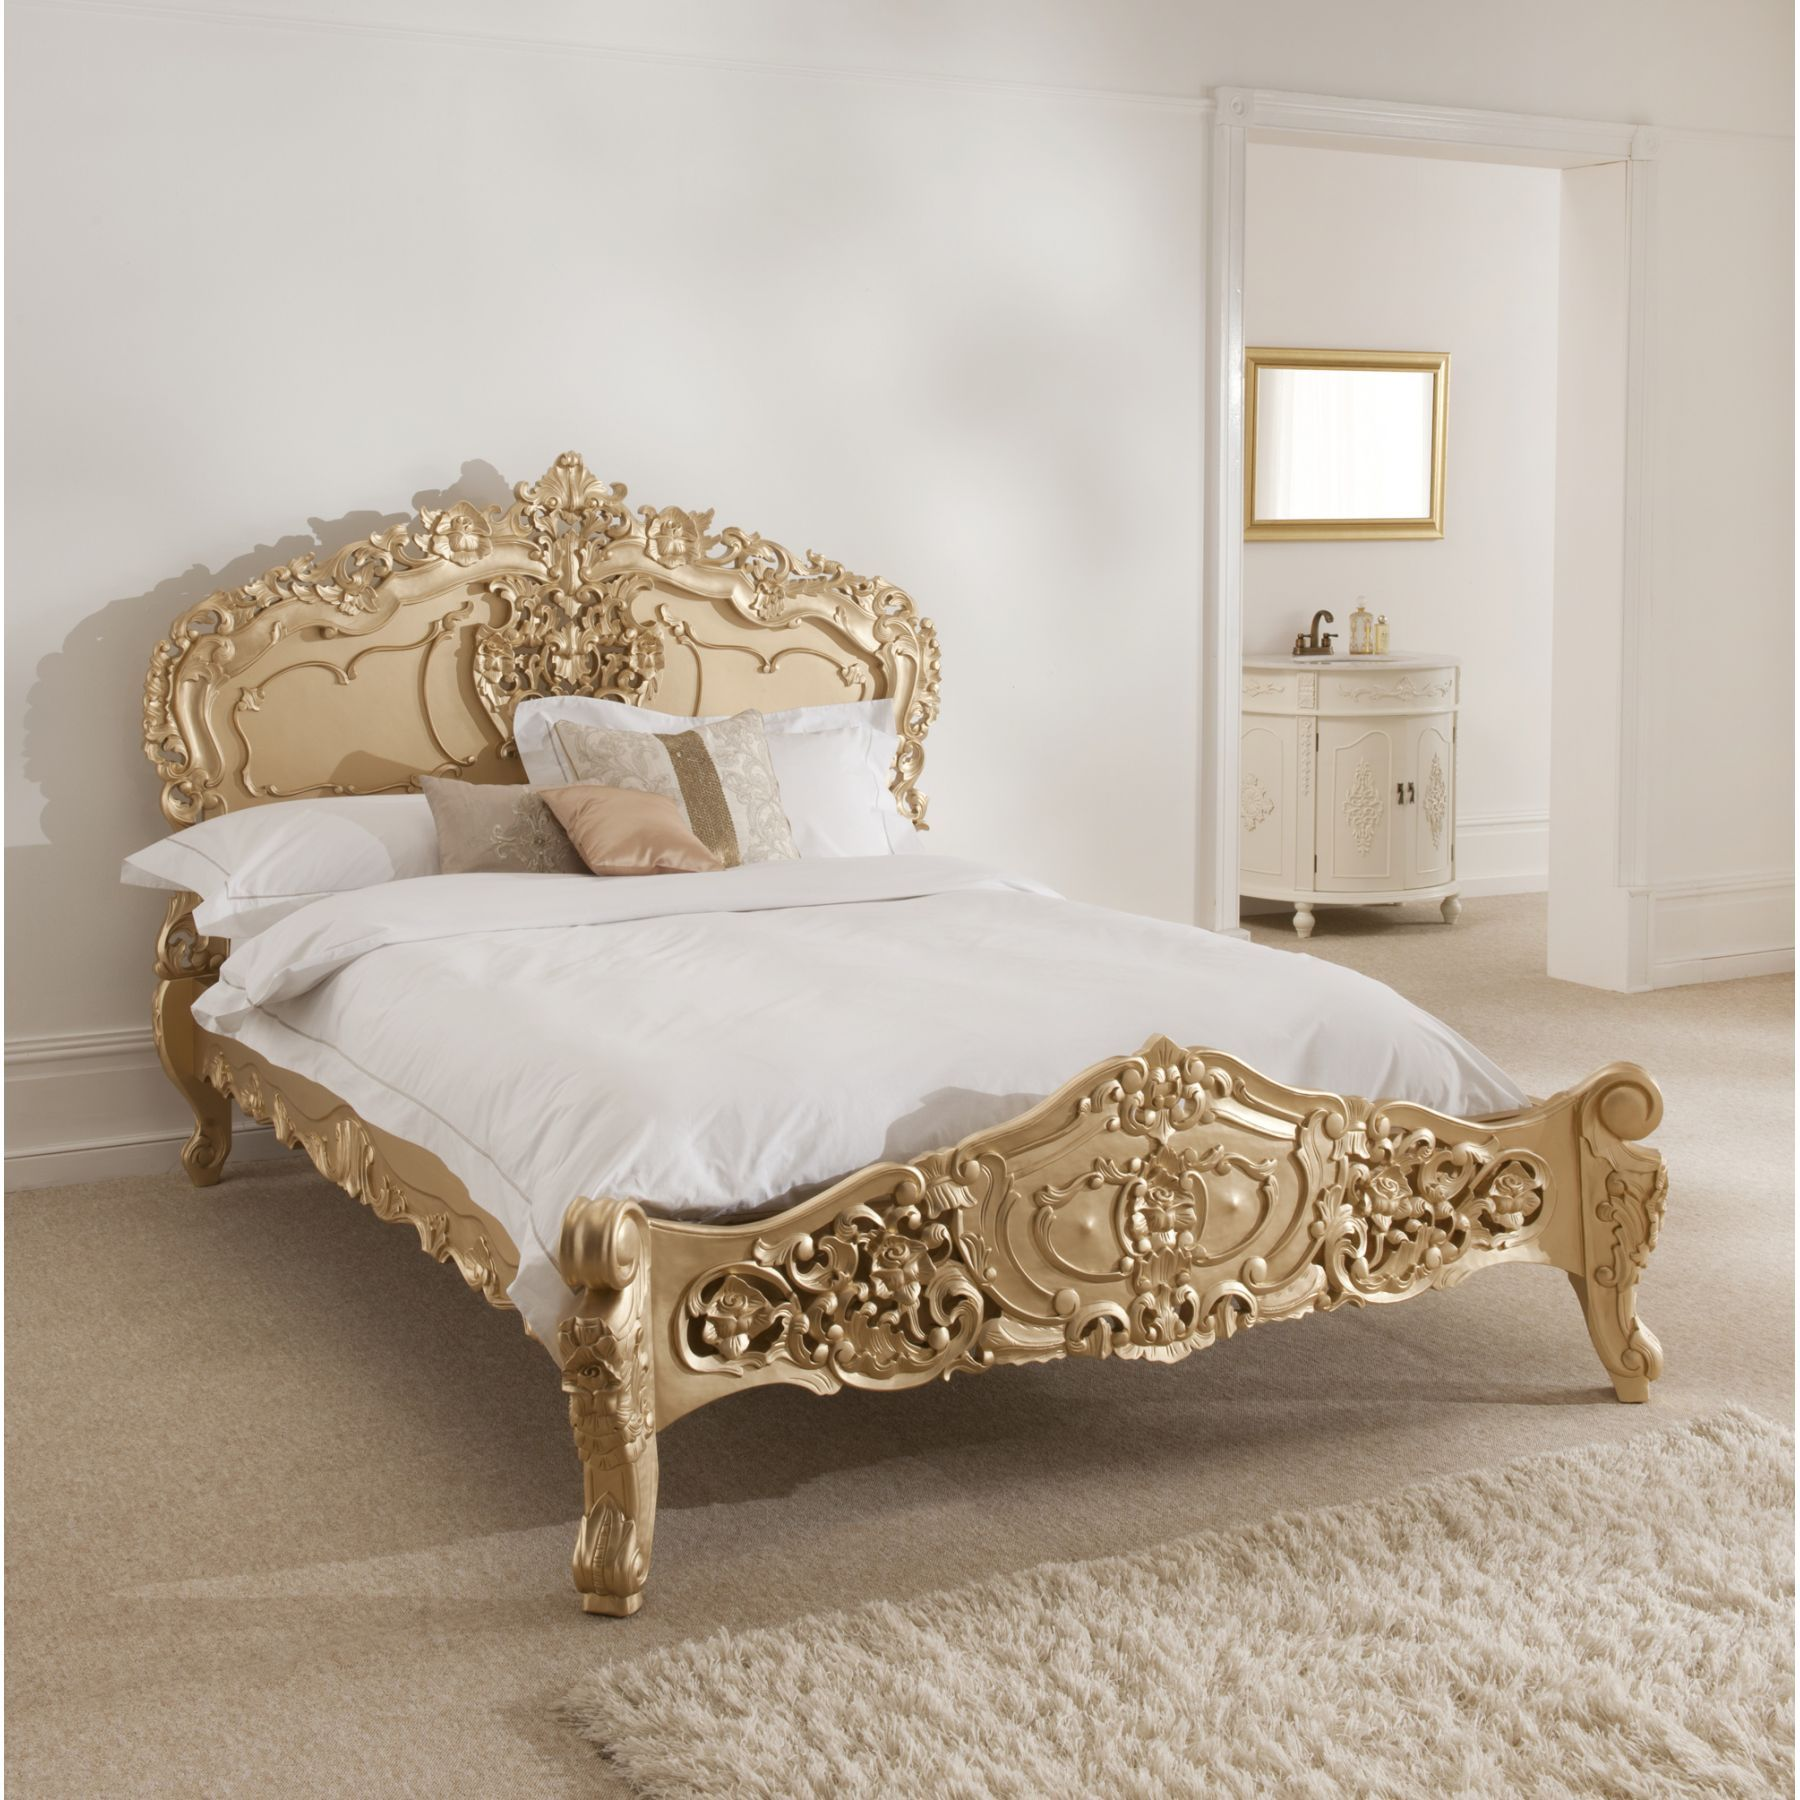 Rococo. This Rococo style mahogany bed with an antique gold finish is